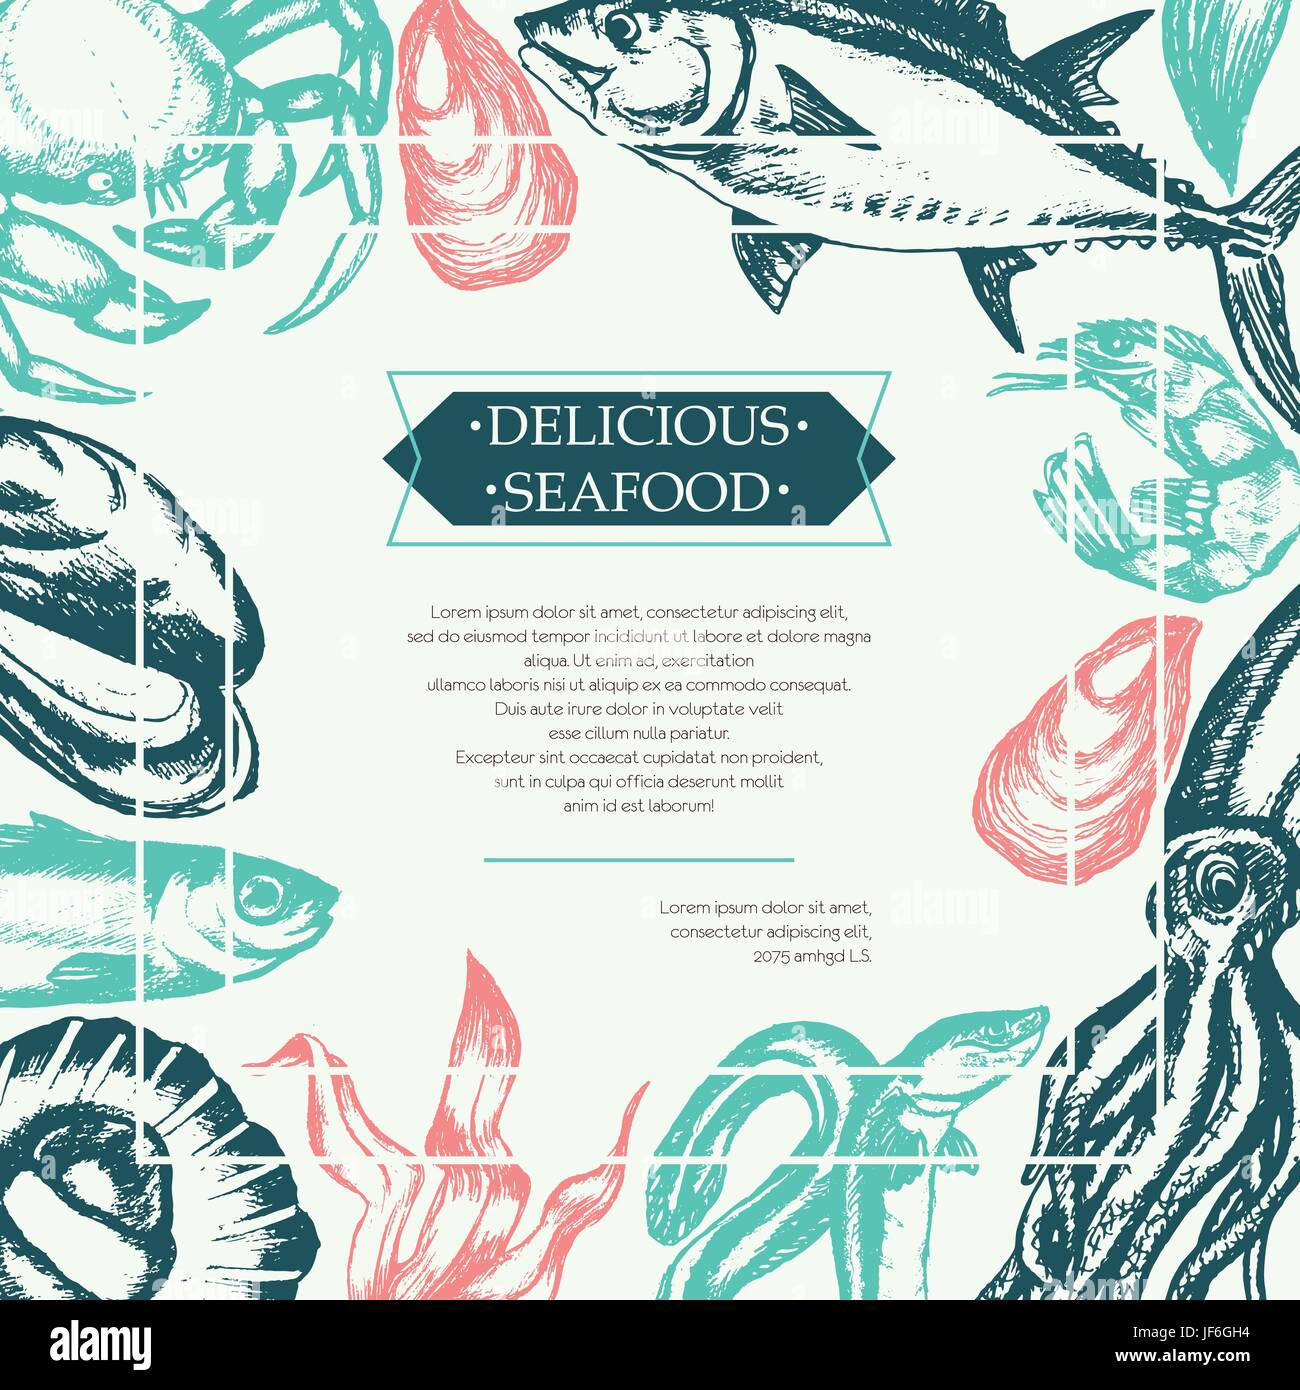 Delicious Seafood - Color Vector Hand Drawn Vintage Postcard Template With  Copy Space For Your Text. Realistic Alga, Seaweed, Squid, Crab, Shrimp, Mus